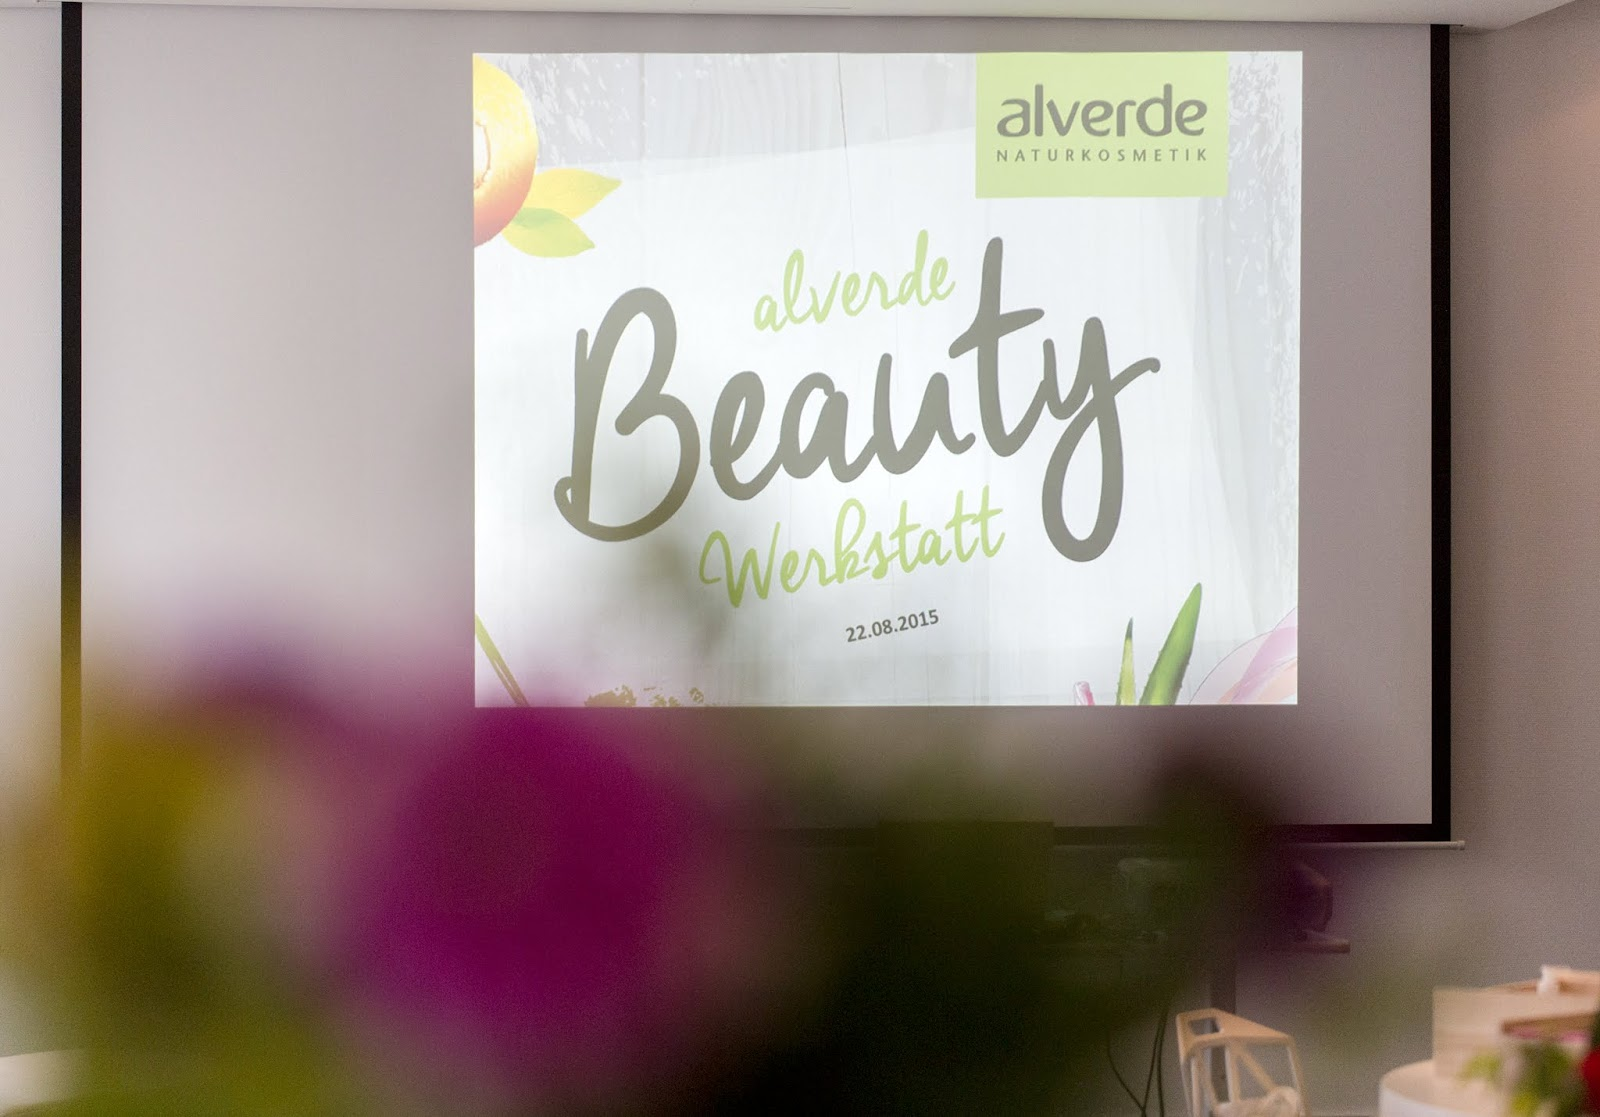 Alverde Blogger Event 2015 - Beauty Werkstatt